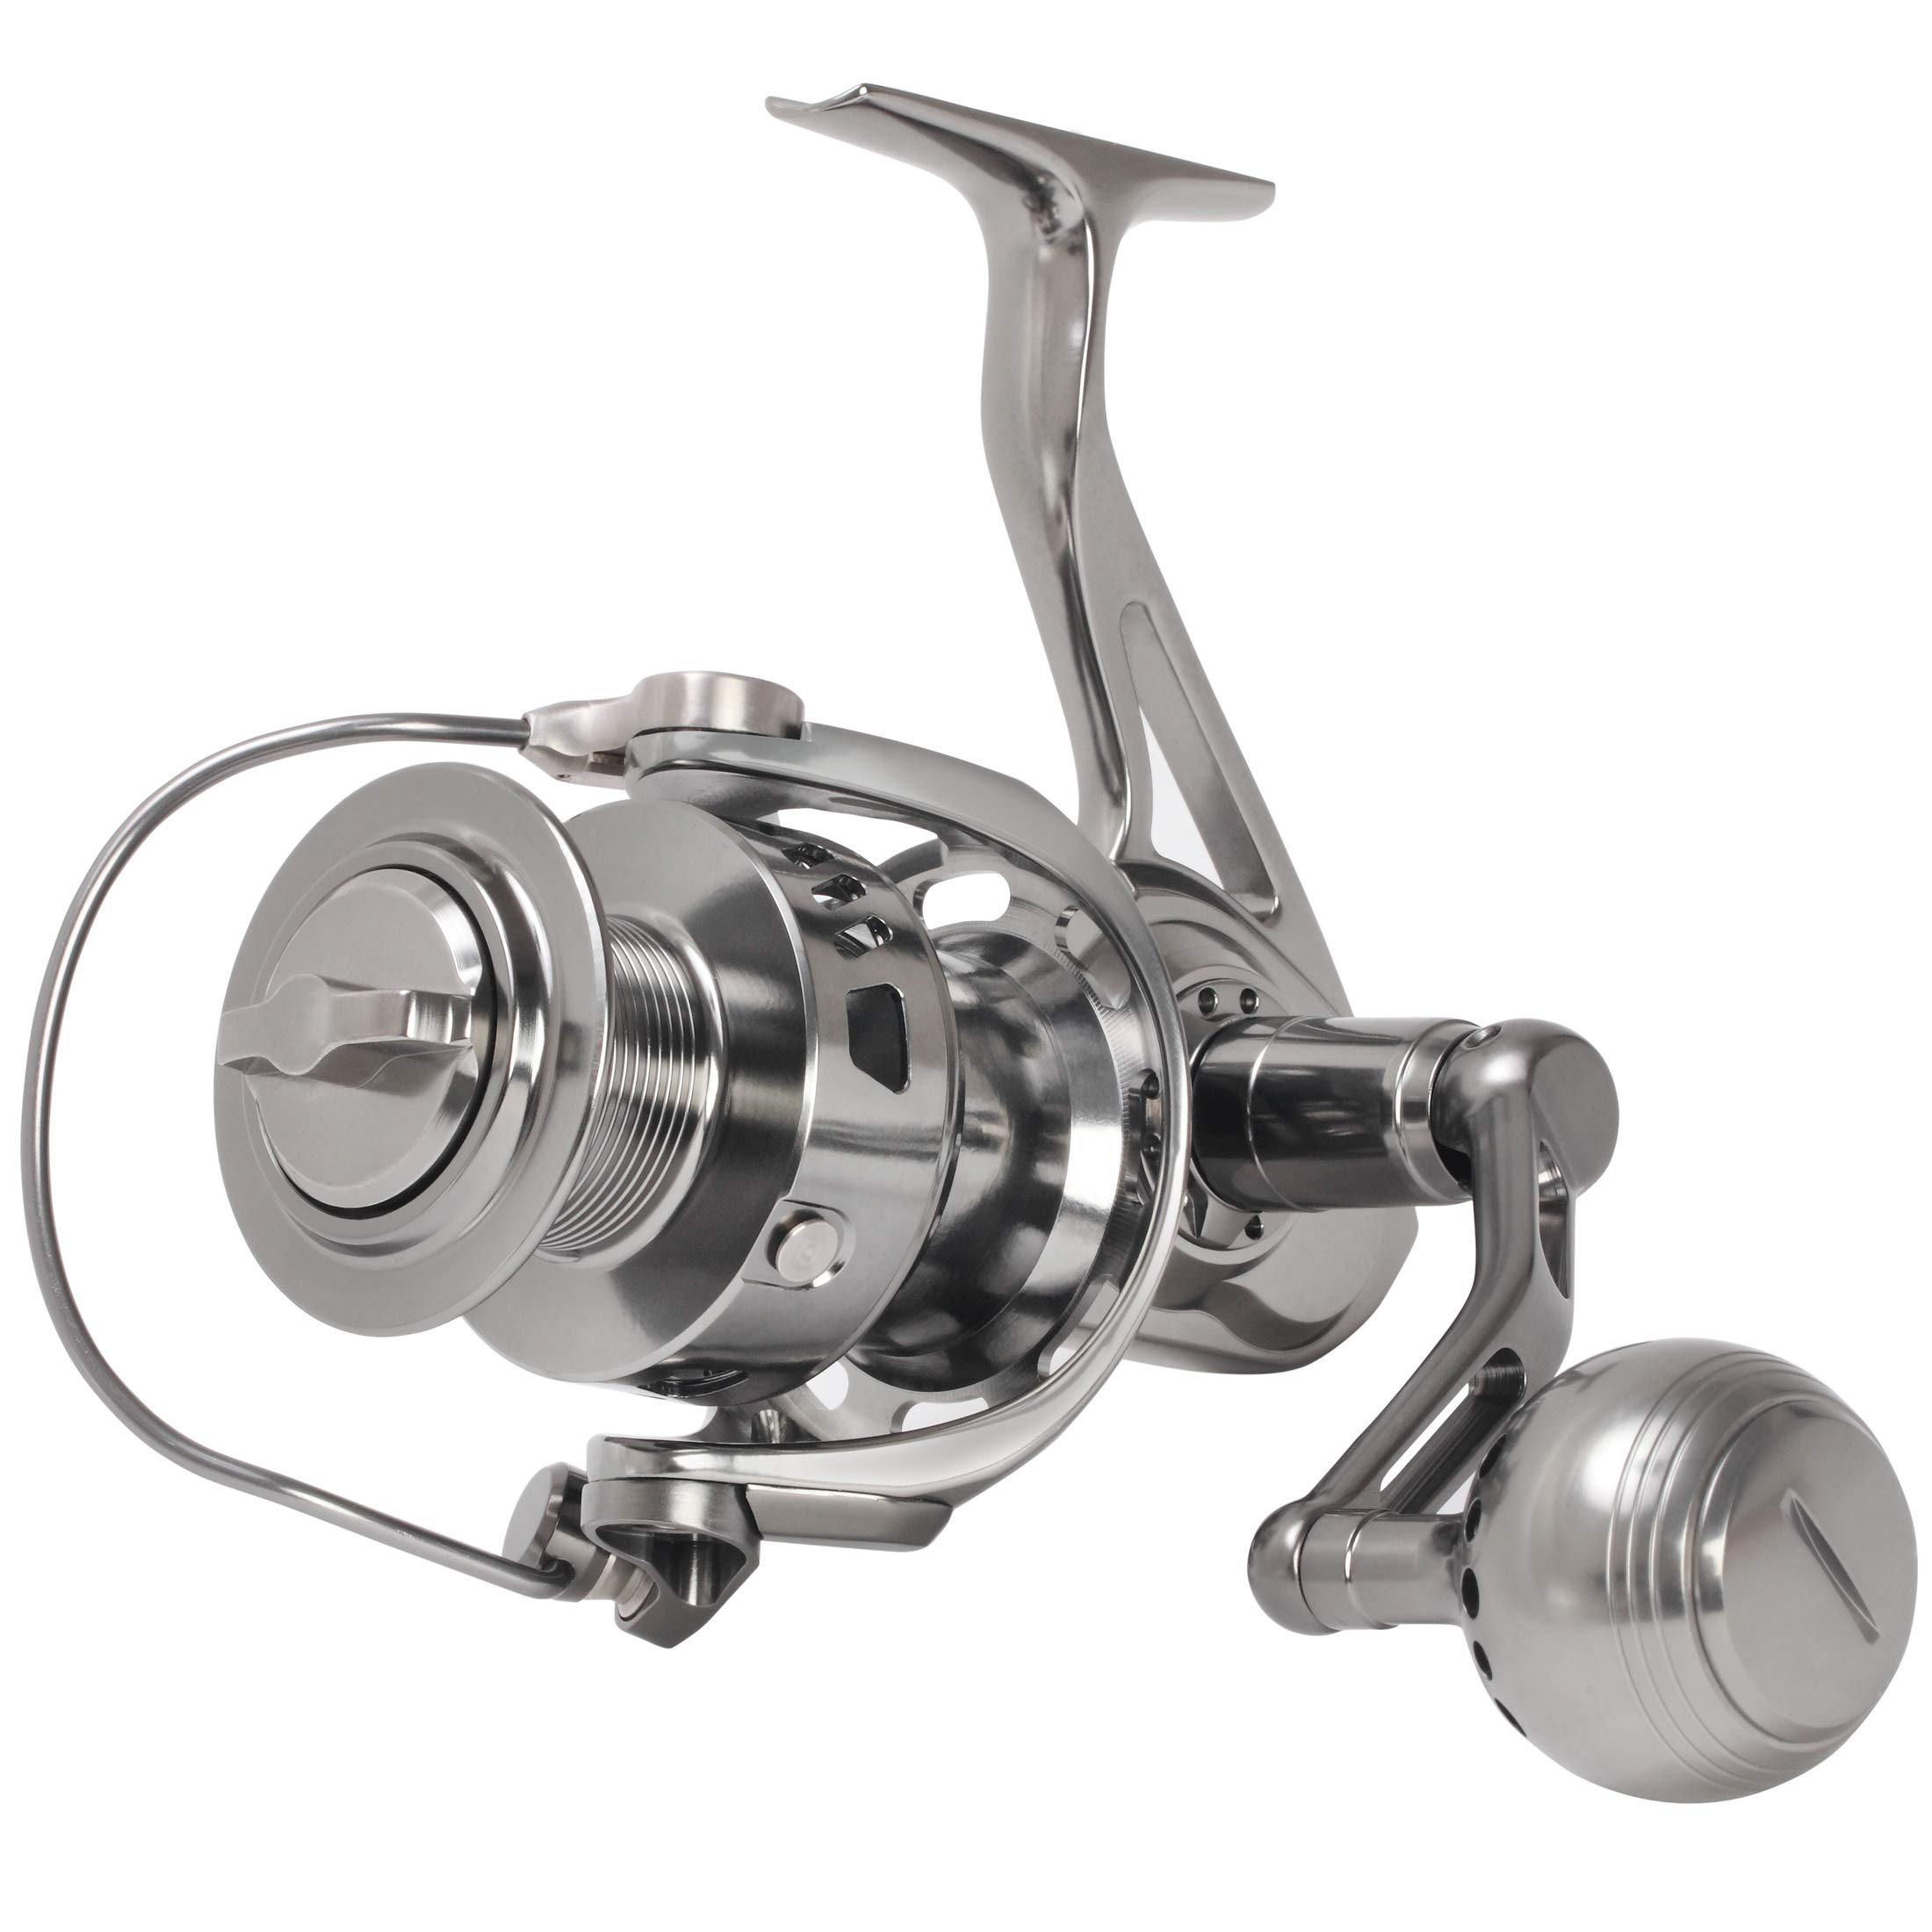 Channelmay CNC Machined Full Metal Powerful Spinning Fishing Reel 20kg Drag Long Cast Saltwater Big Game Boat Surf Fishing 44lb Drag Size 5000 by Channelmay